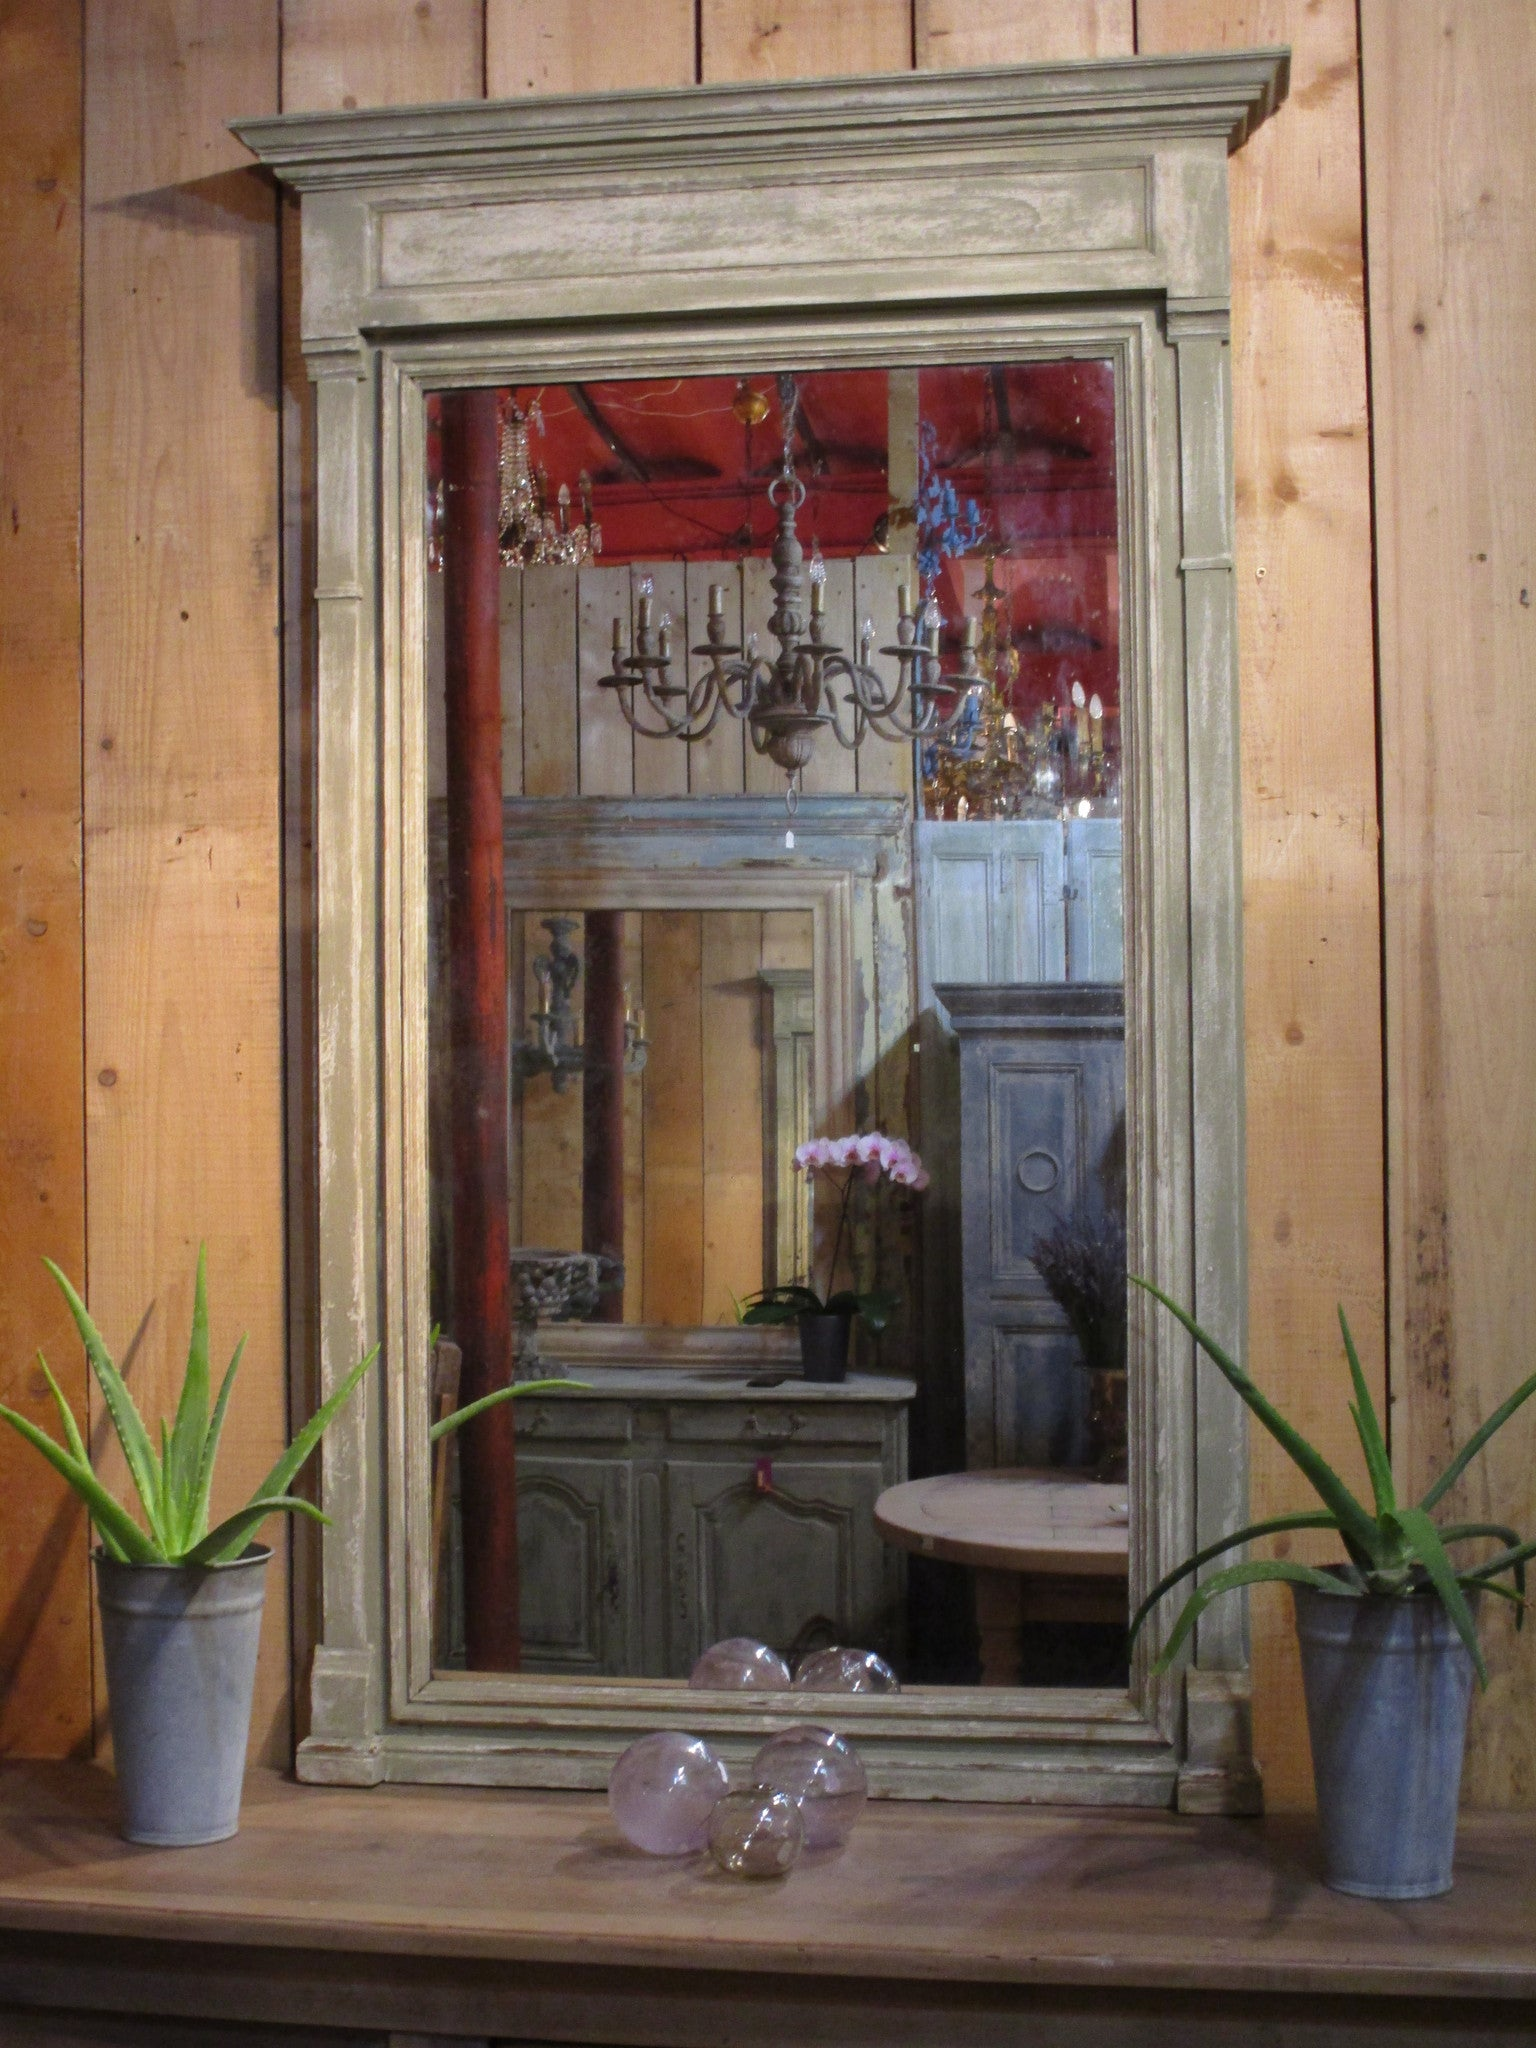 French Napoleon III mantel manteau mirror rectangular rustic patina modern farmhouse